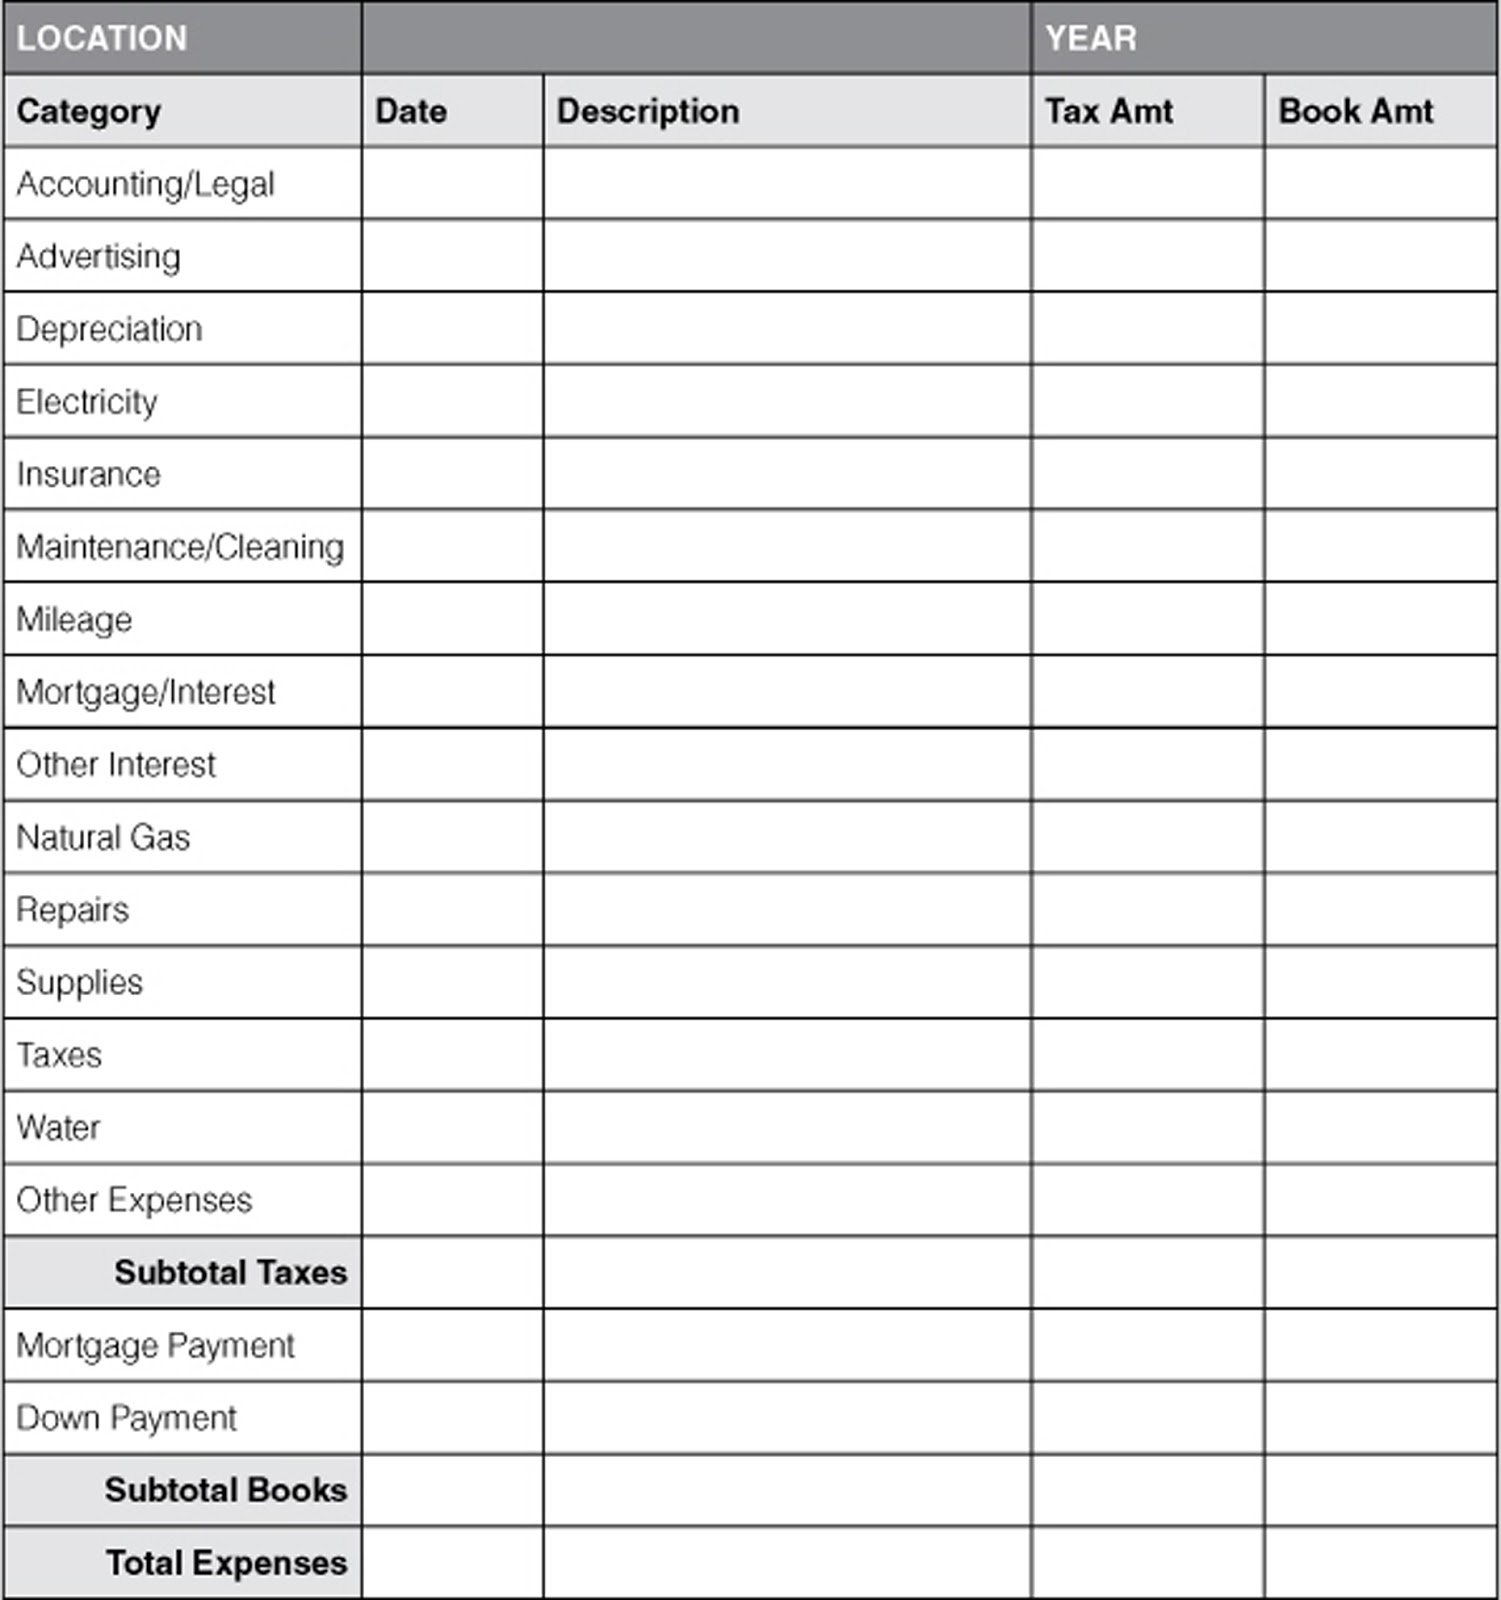 Accountant Lamp Picture: Accounting Ledger Worksheets